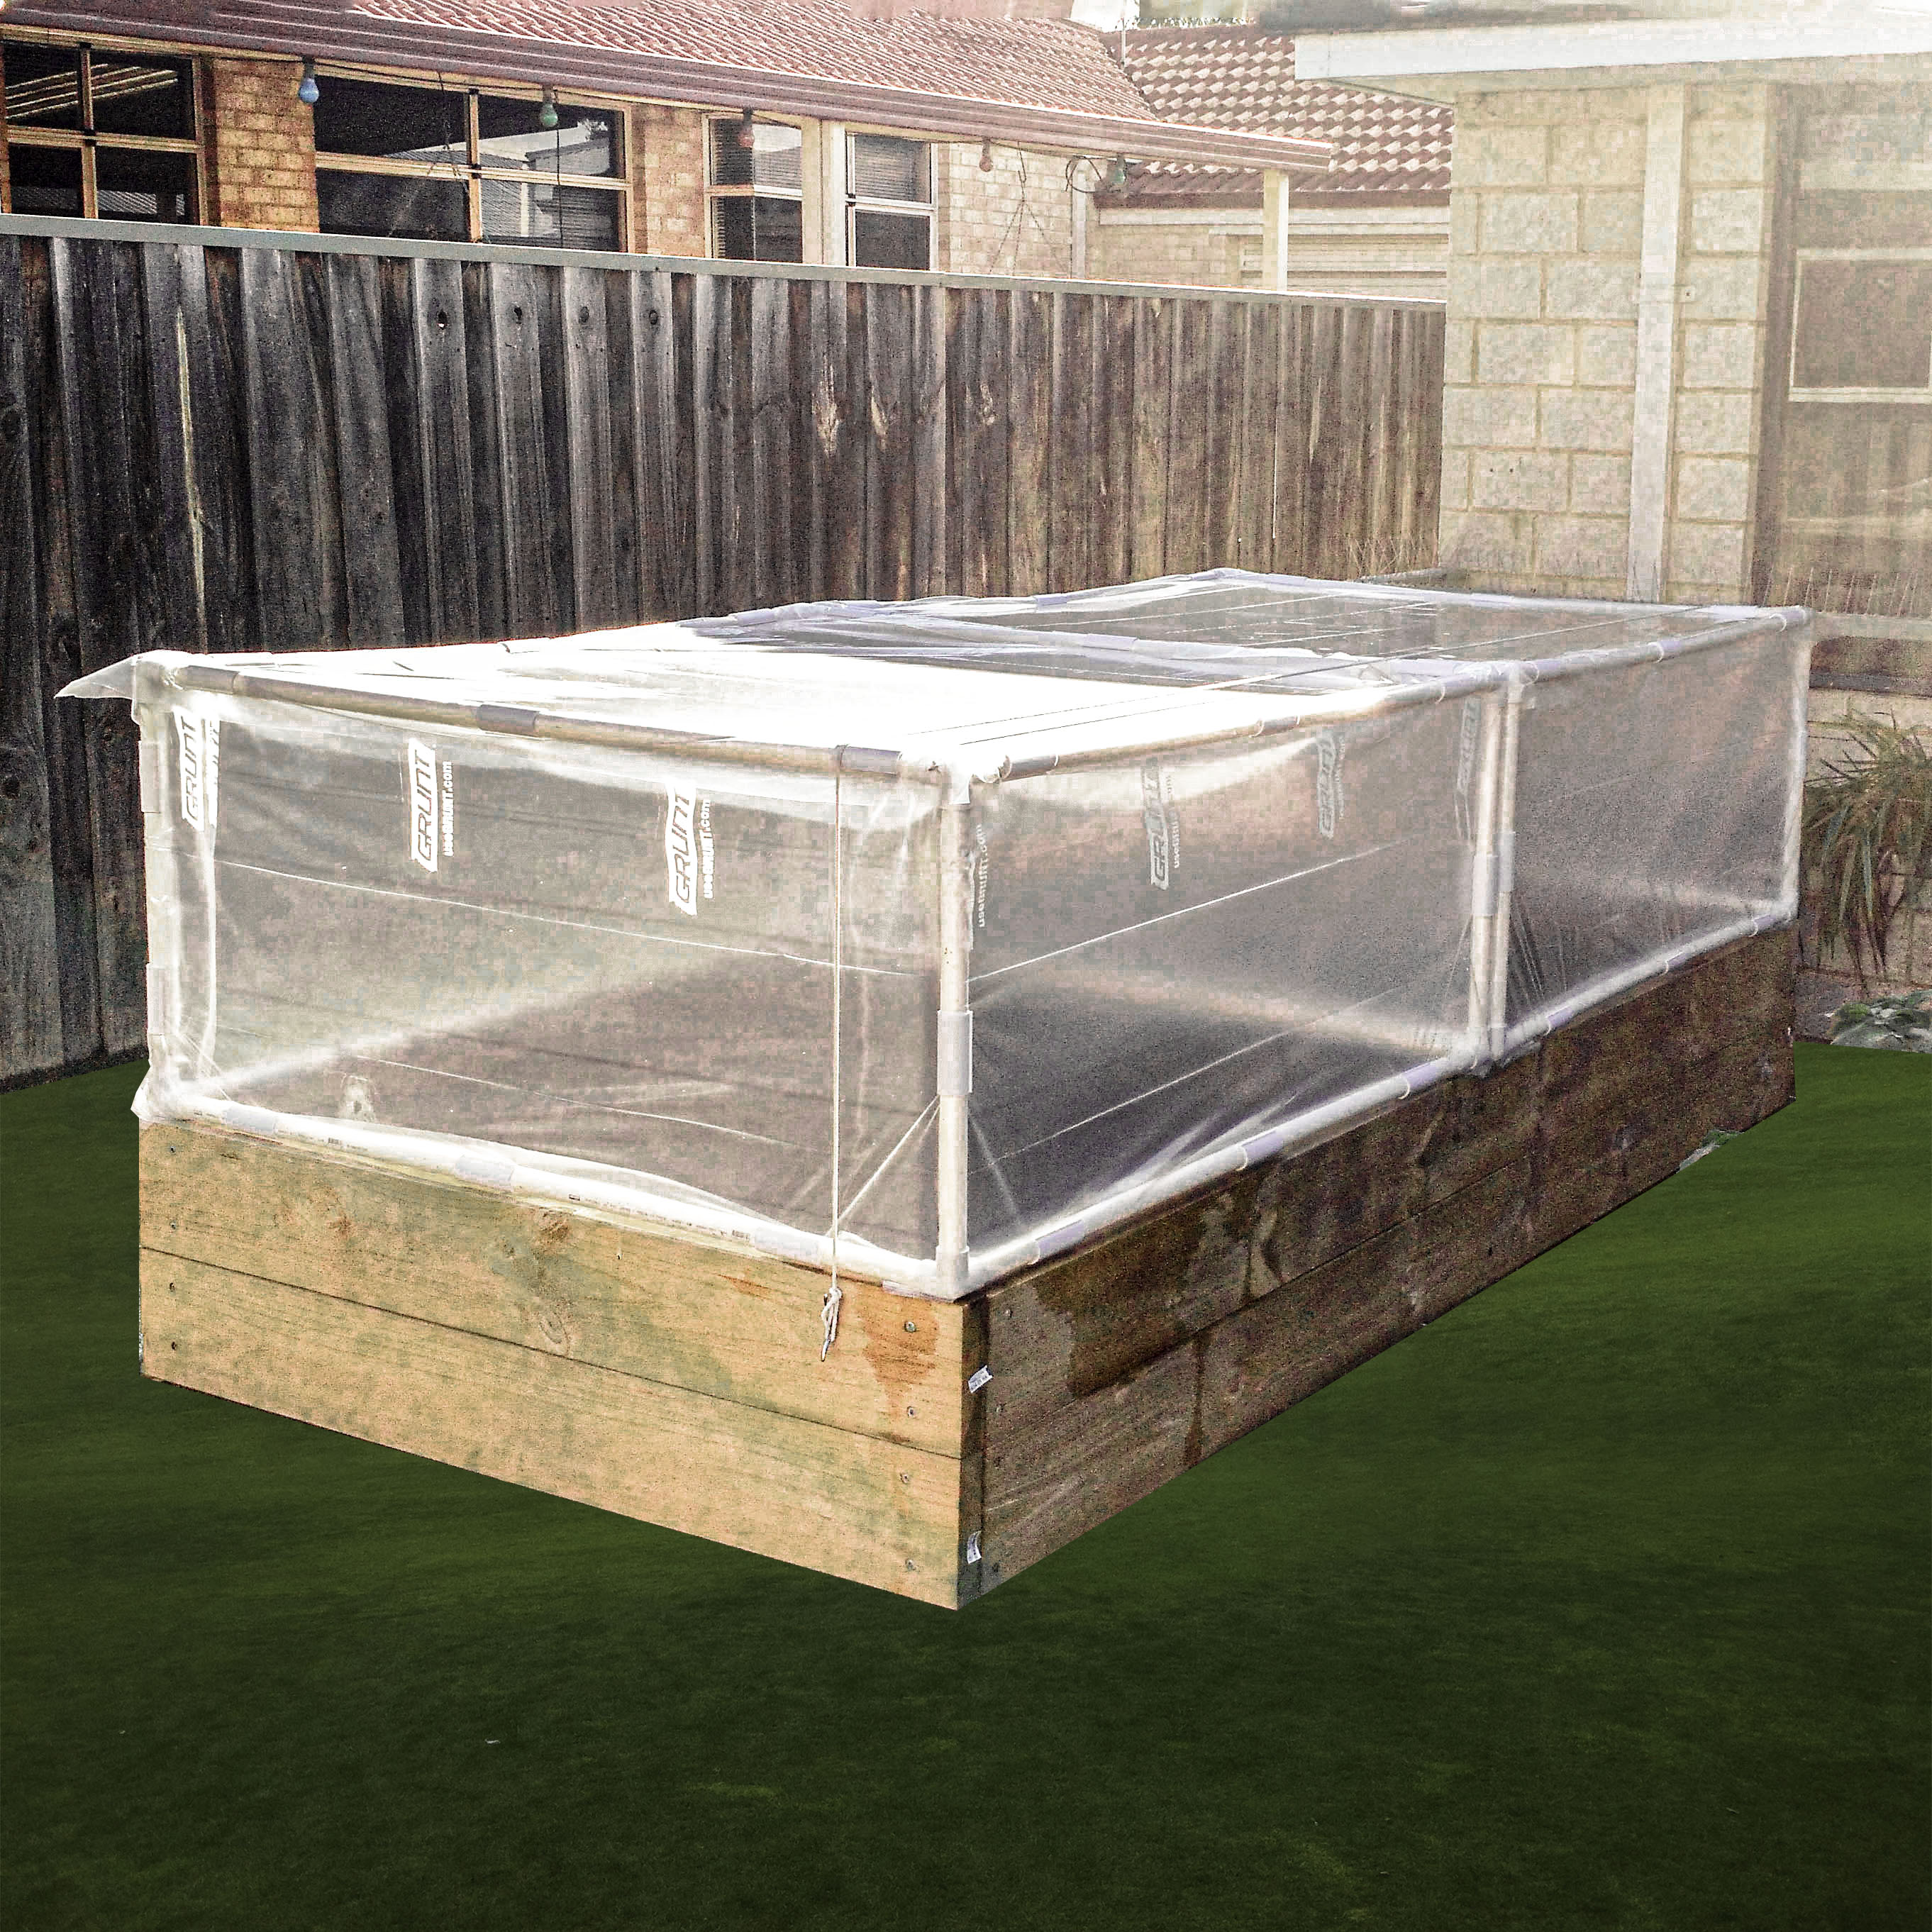 backyard cold frame built with ltee PVC connectors and pipe from Klever Cages. 3 way PVC connectors have also been used